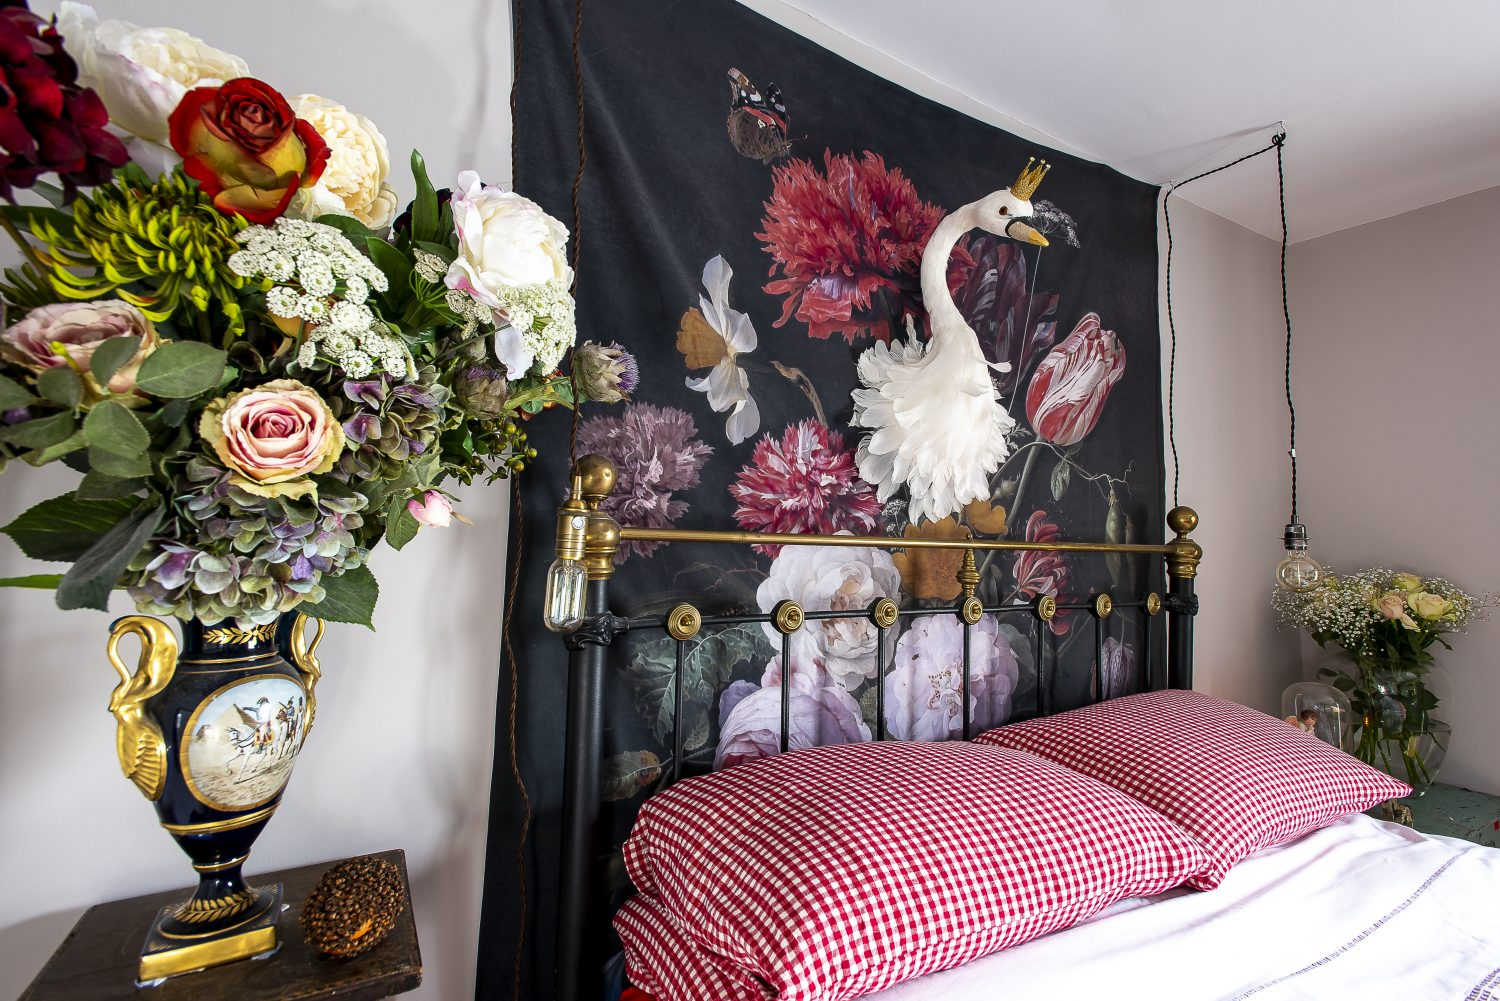 Sally's bedroom. An oversized wall hanging of flowers, from which a swan protudes, adds to the fairytale feel